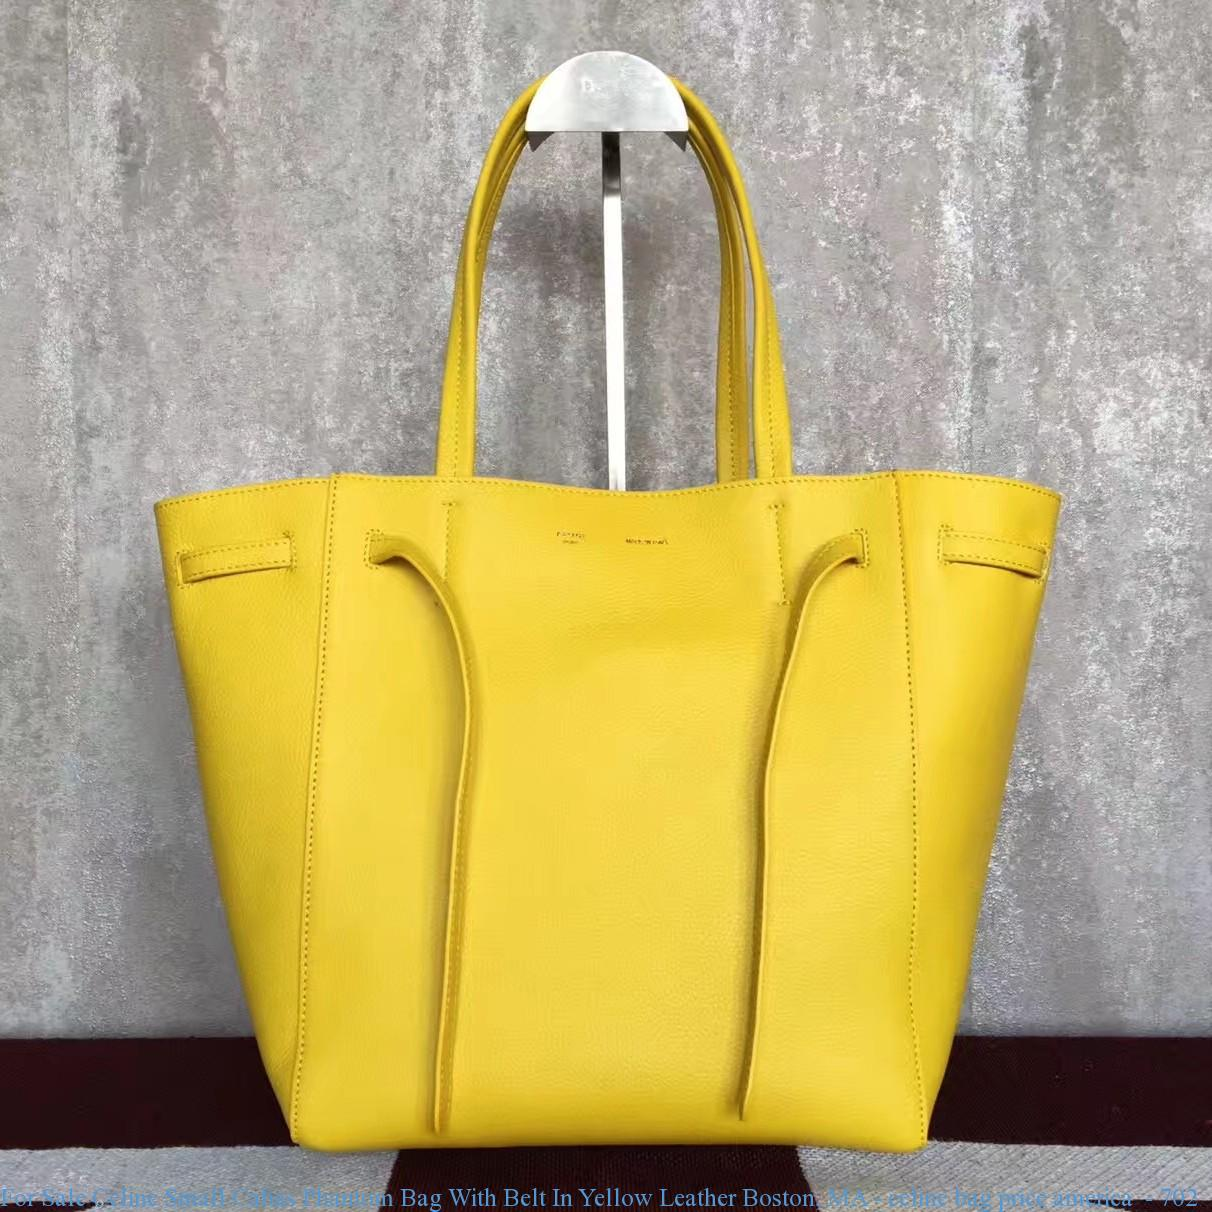 For Celine Small Cabas Phantom Bag With Belt In Yellow Leather Boston Ma Price America 702